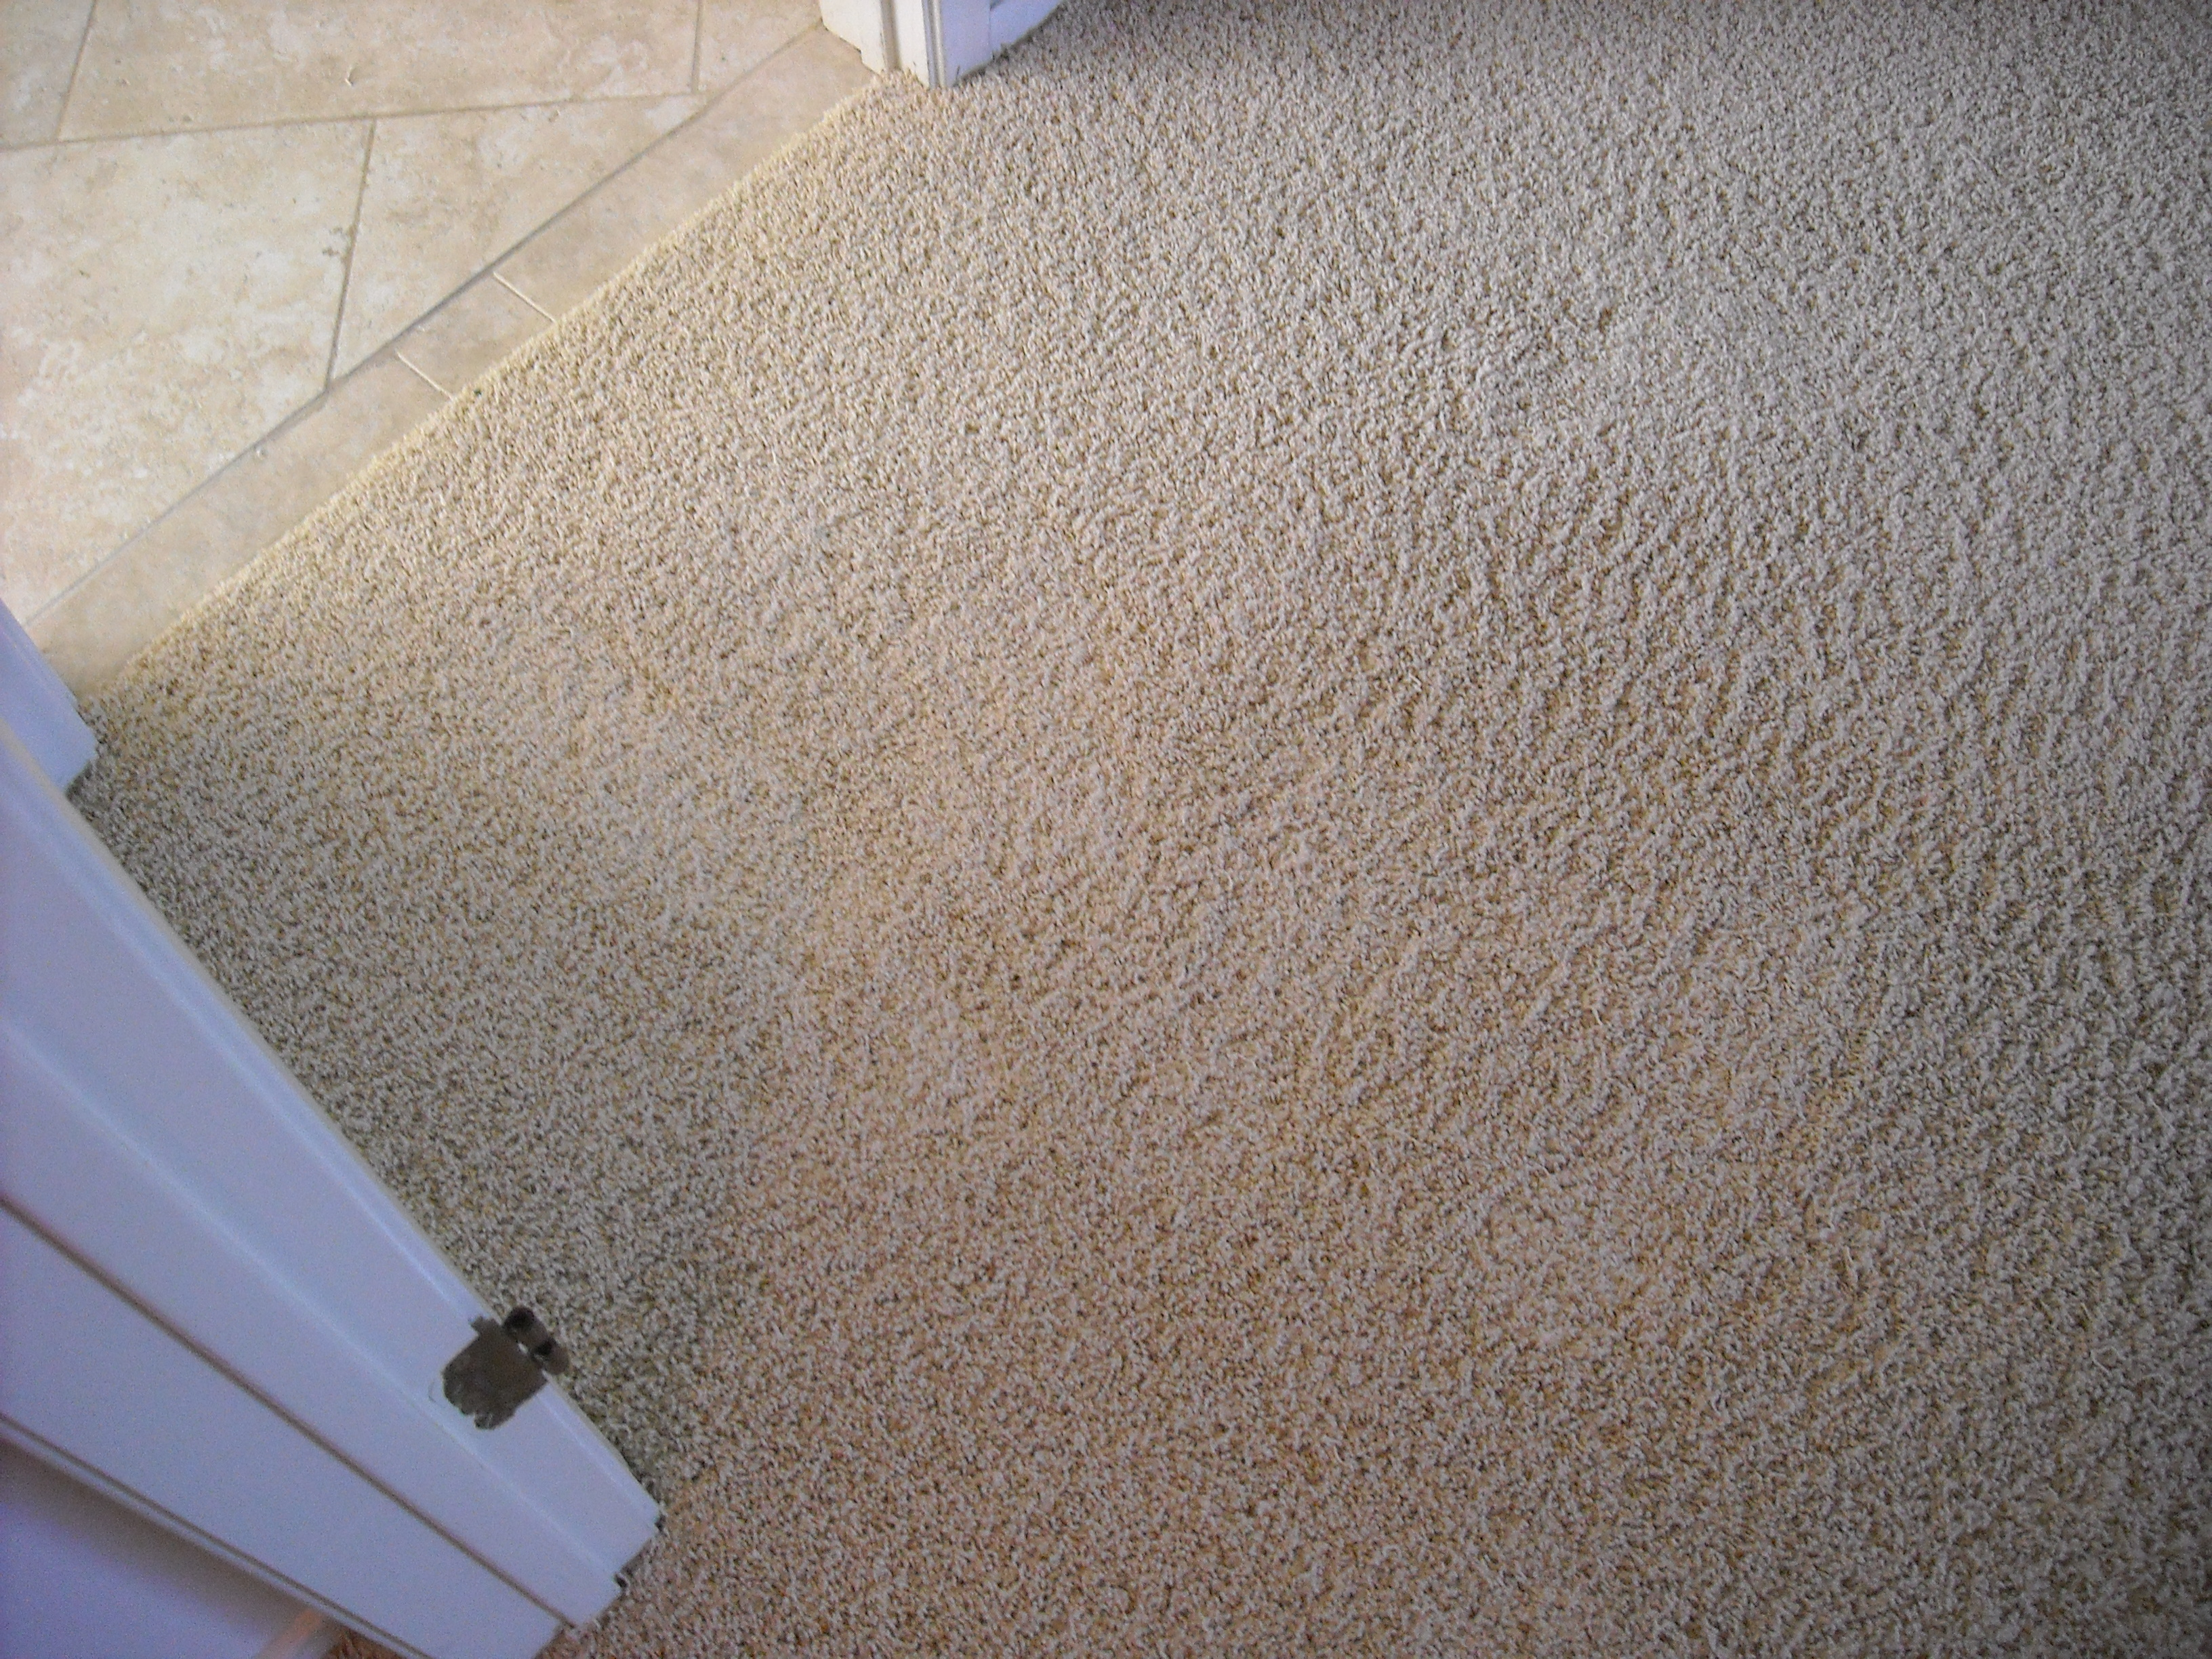 Repair Of Bleach Stain 6 Commercial Cleaning Amp Restoration